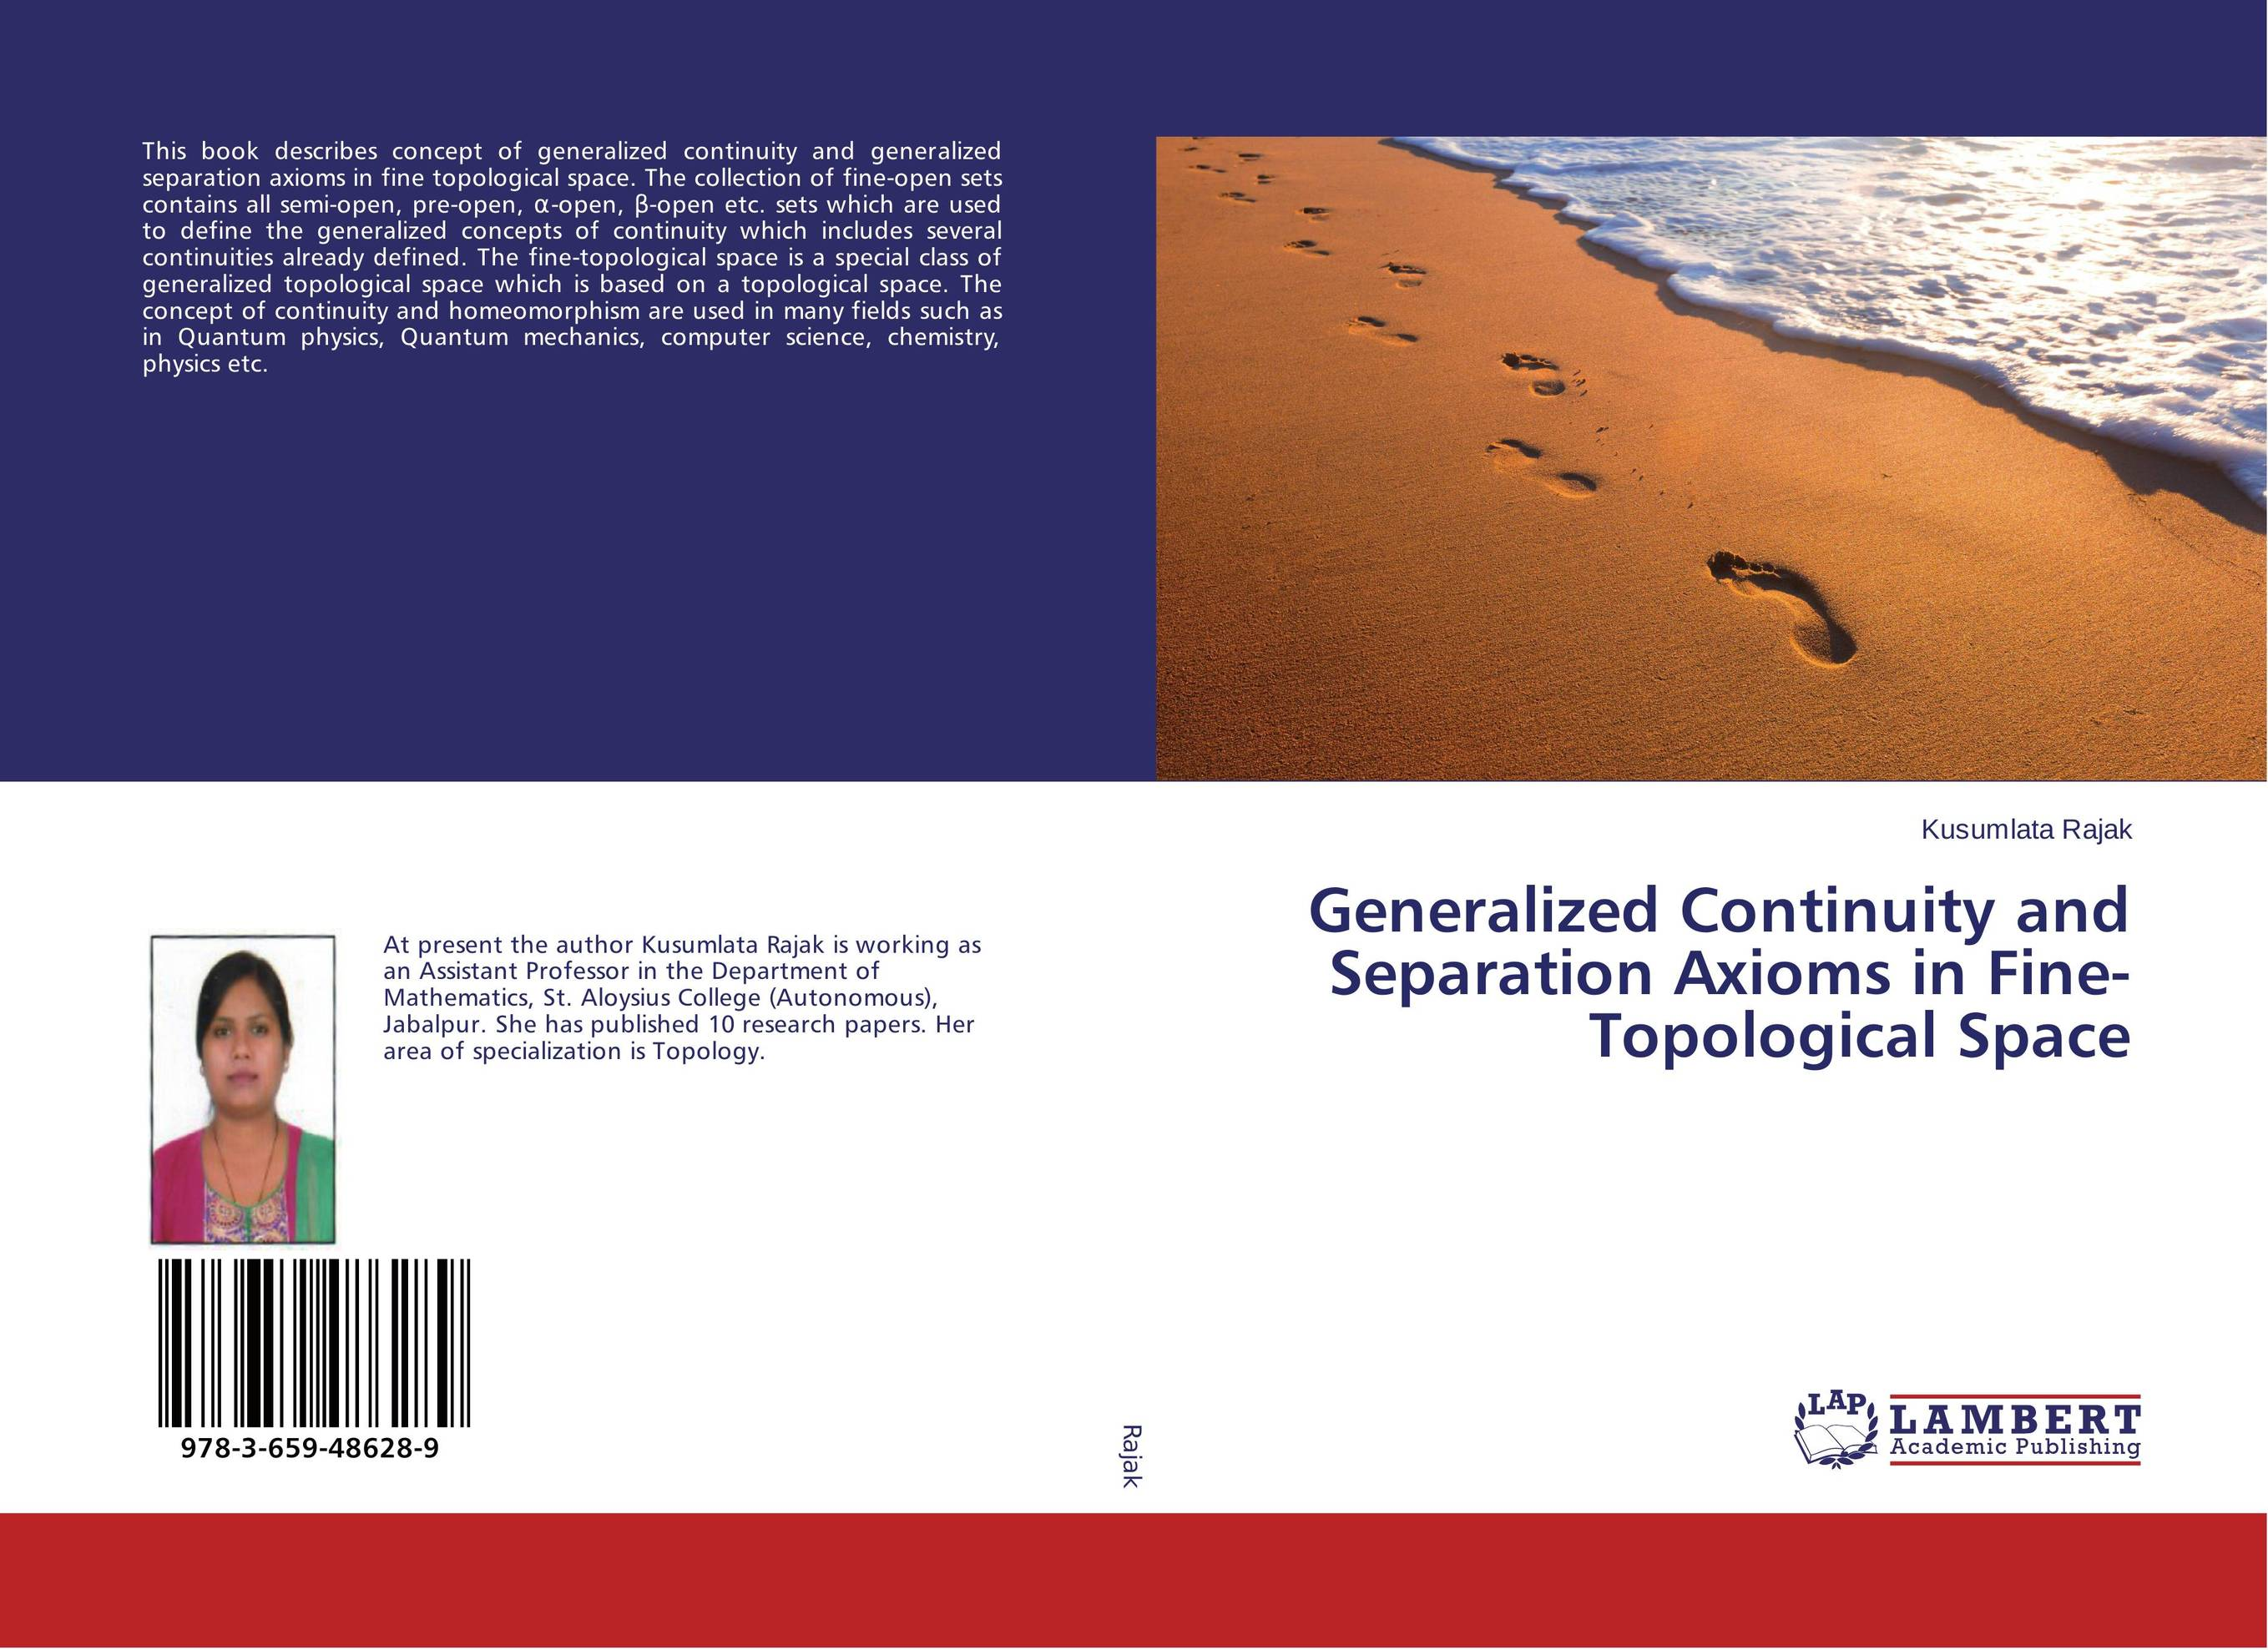 Generalized Continuity and Separation Axioms in Fine-Topological Space